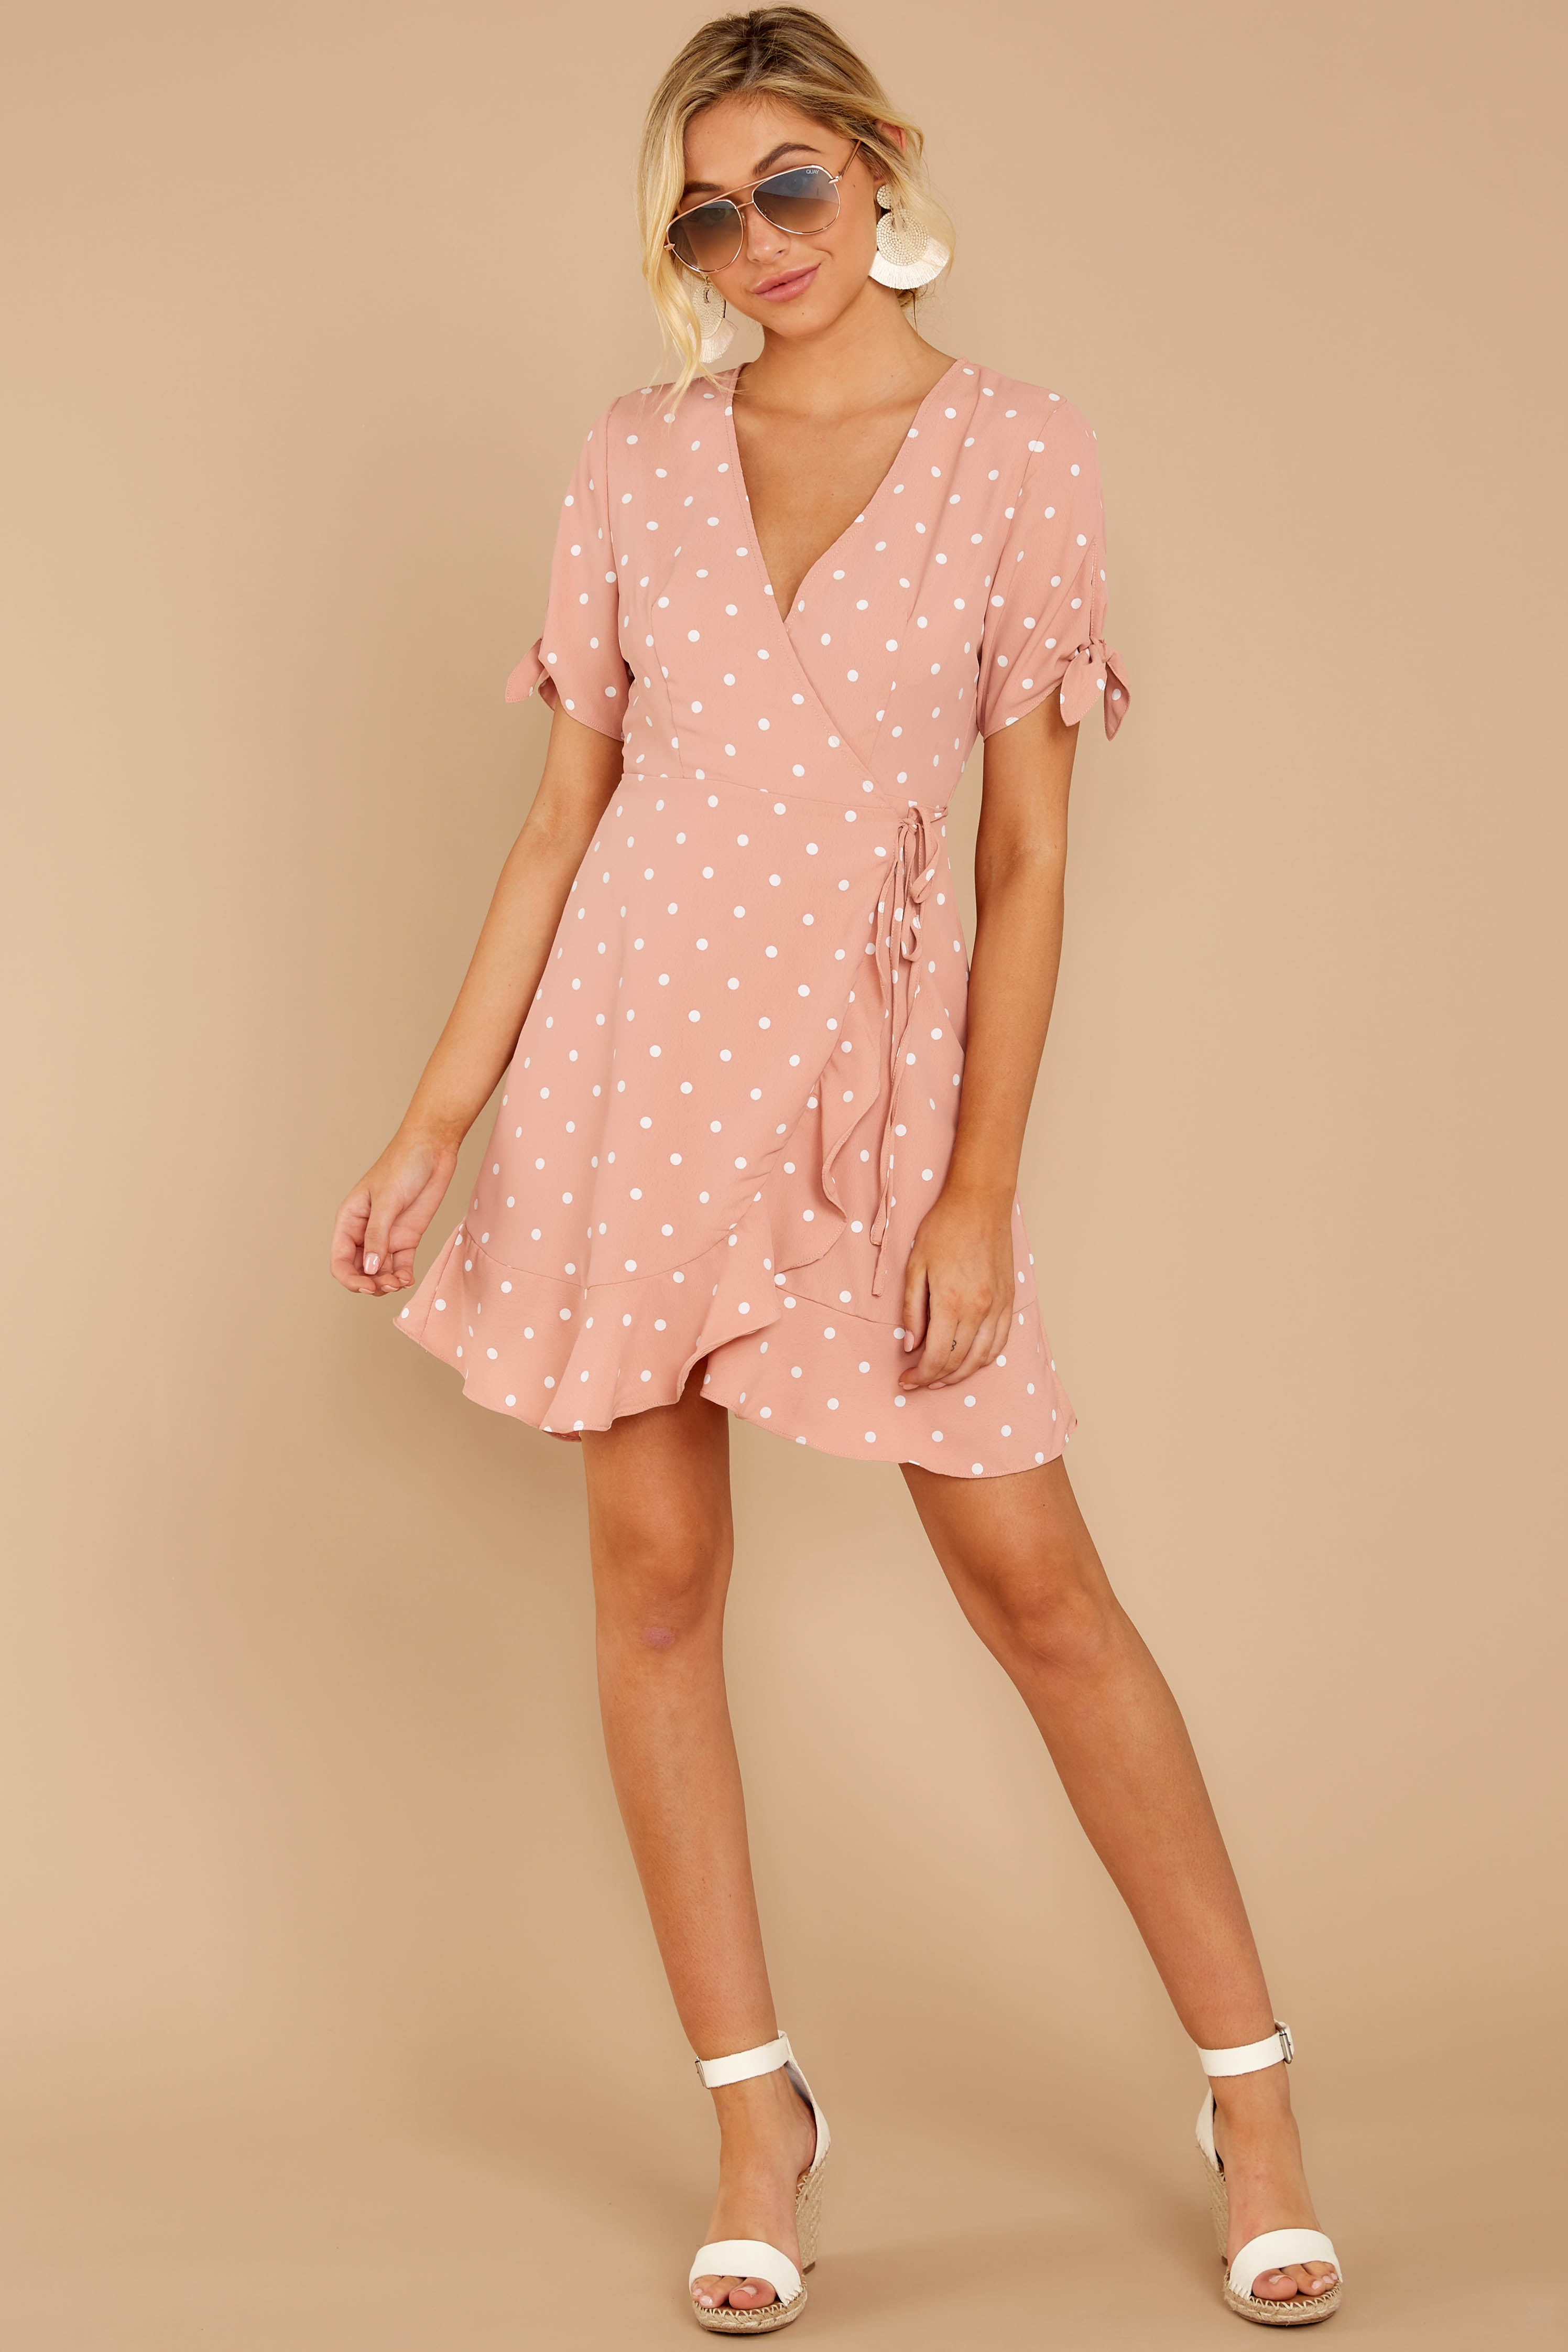 2 Touch Of Luck Blush Pink Polka Dot Wrap Dress at reddressboutique.com